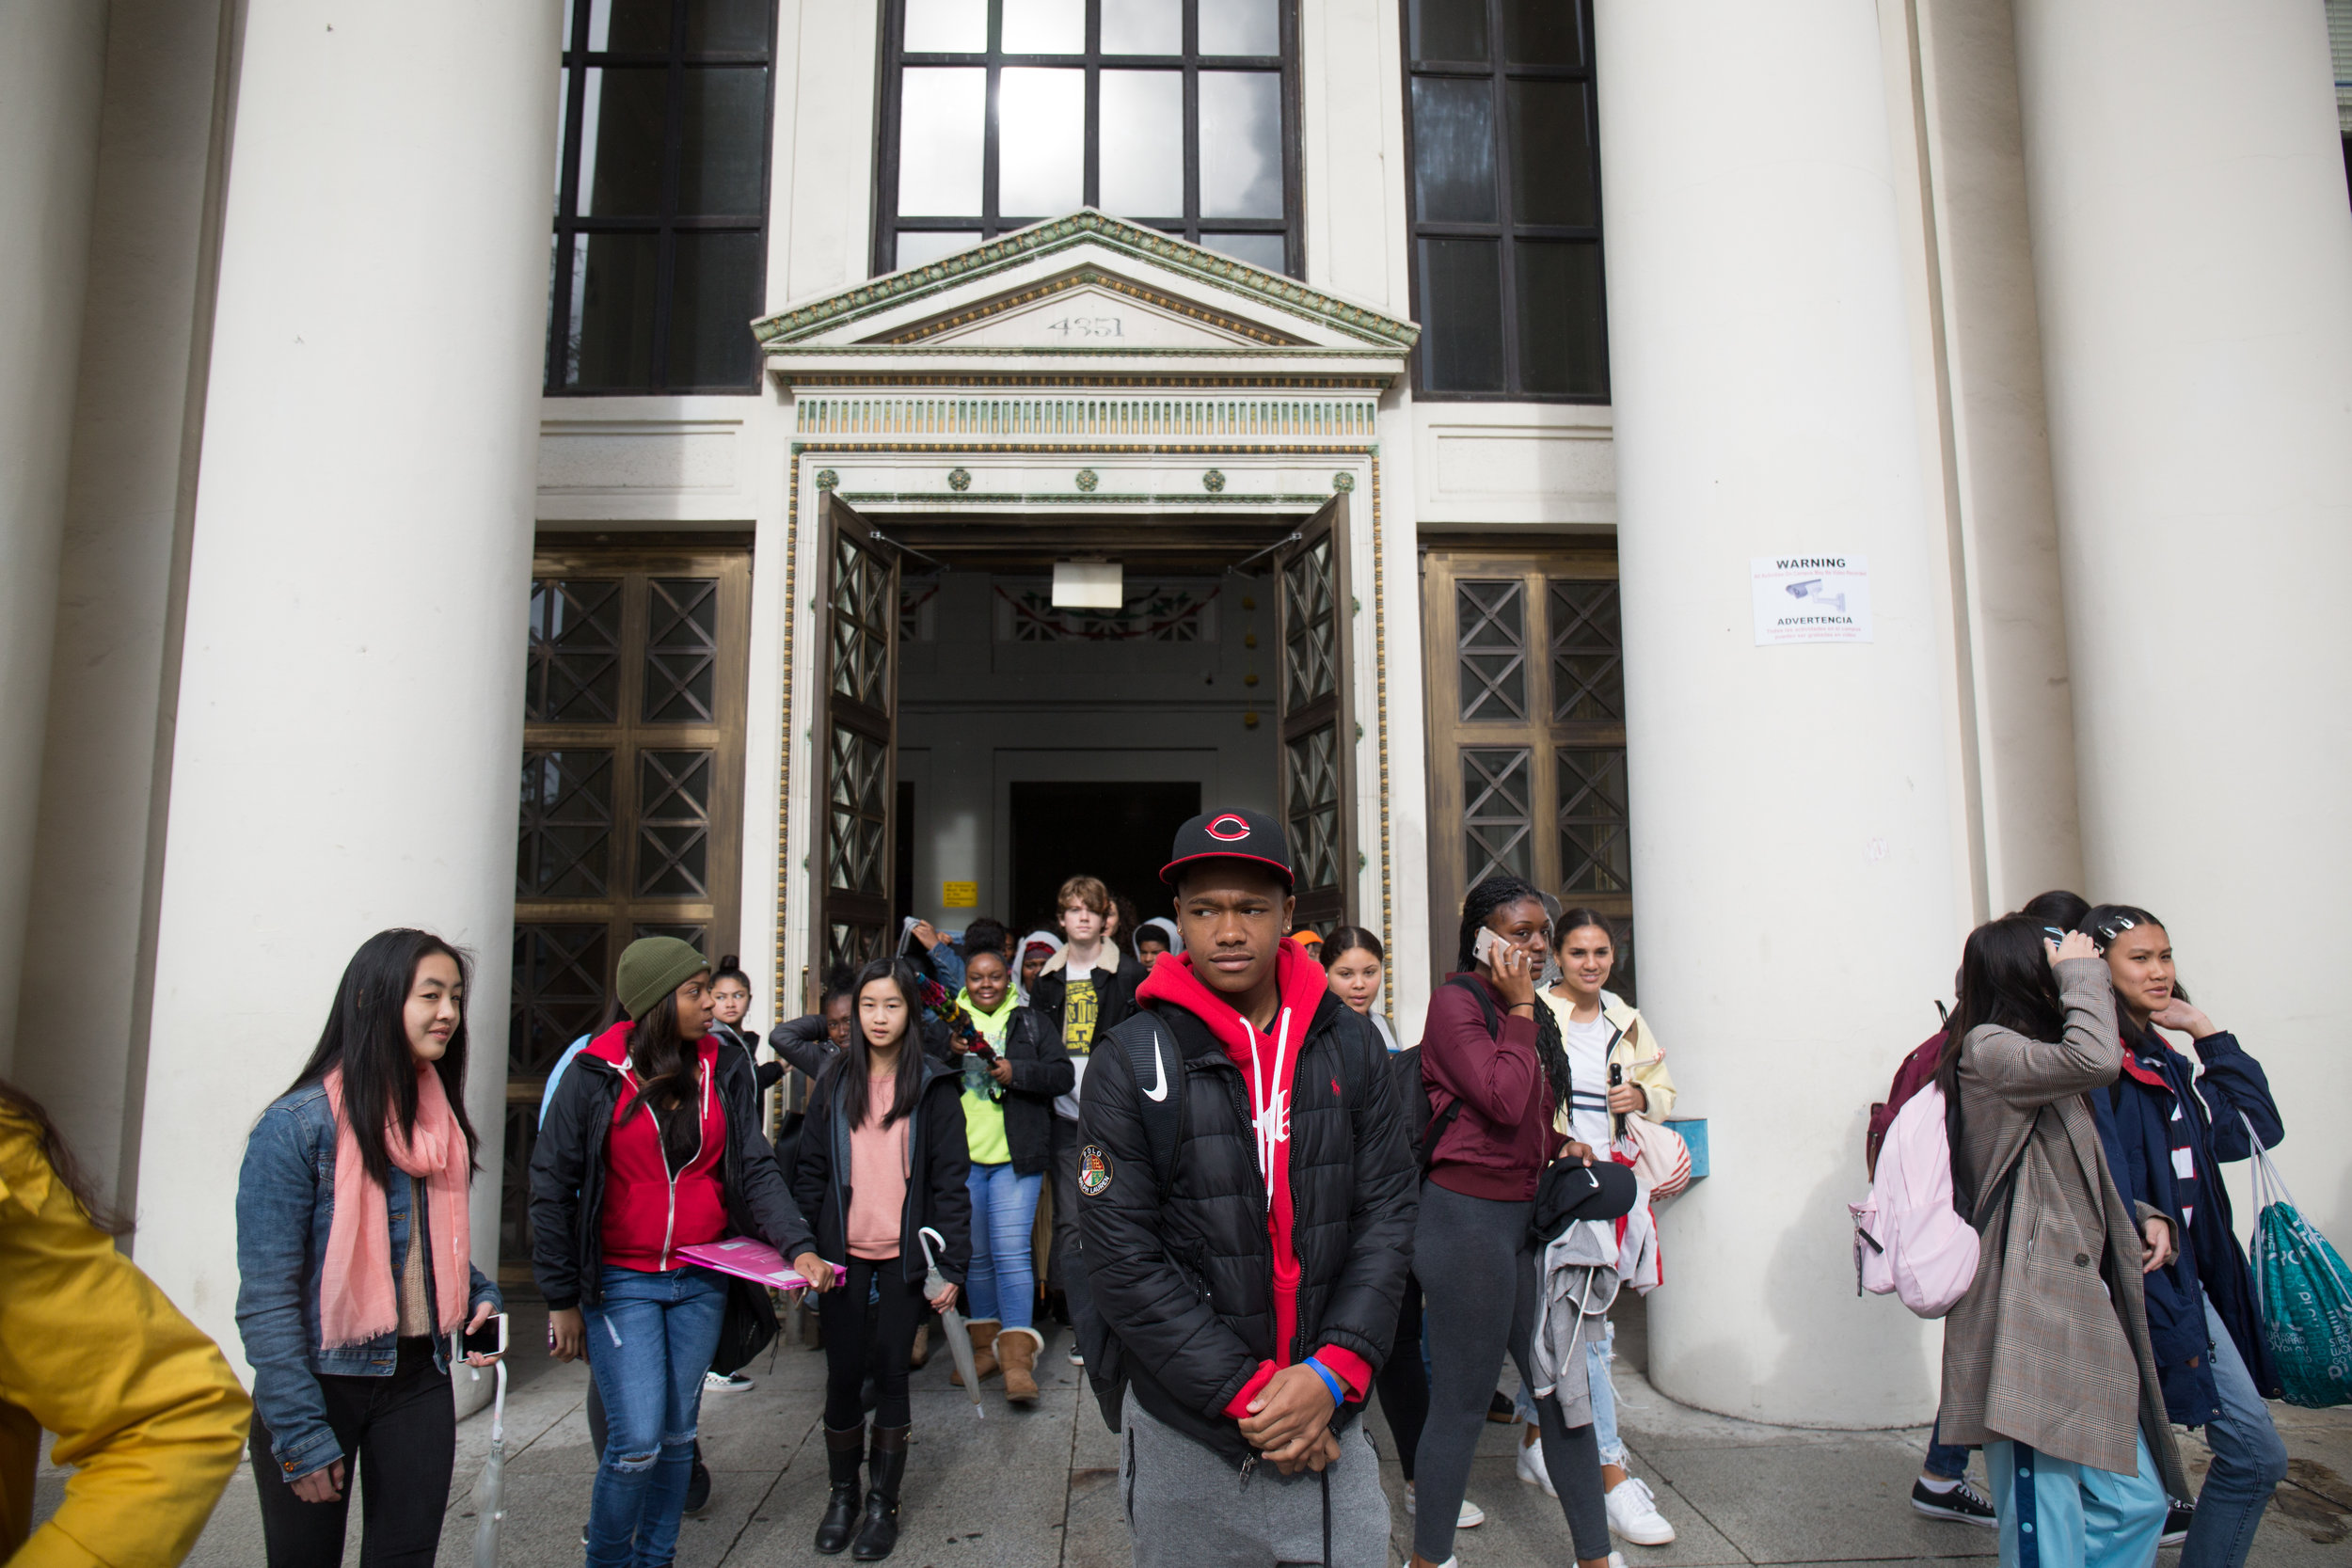 Students at Oakland Technical High School joined a nationwide walkout to press for stricter gun control on March 14, 2018, one month following the mass shooting at Parkland High School that killed 17.